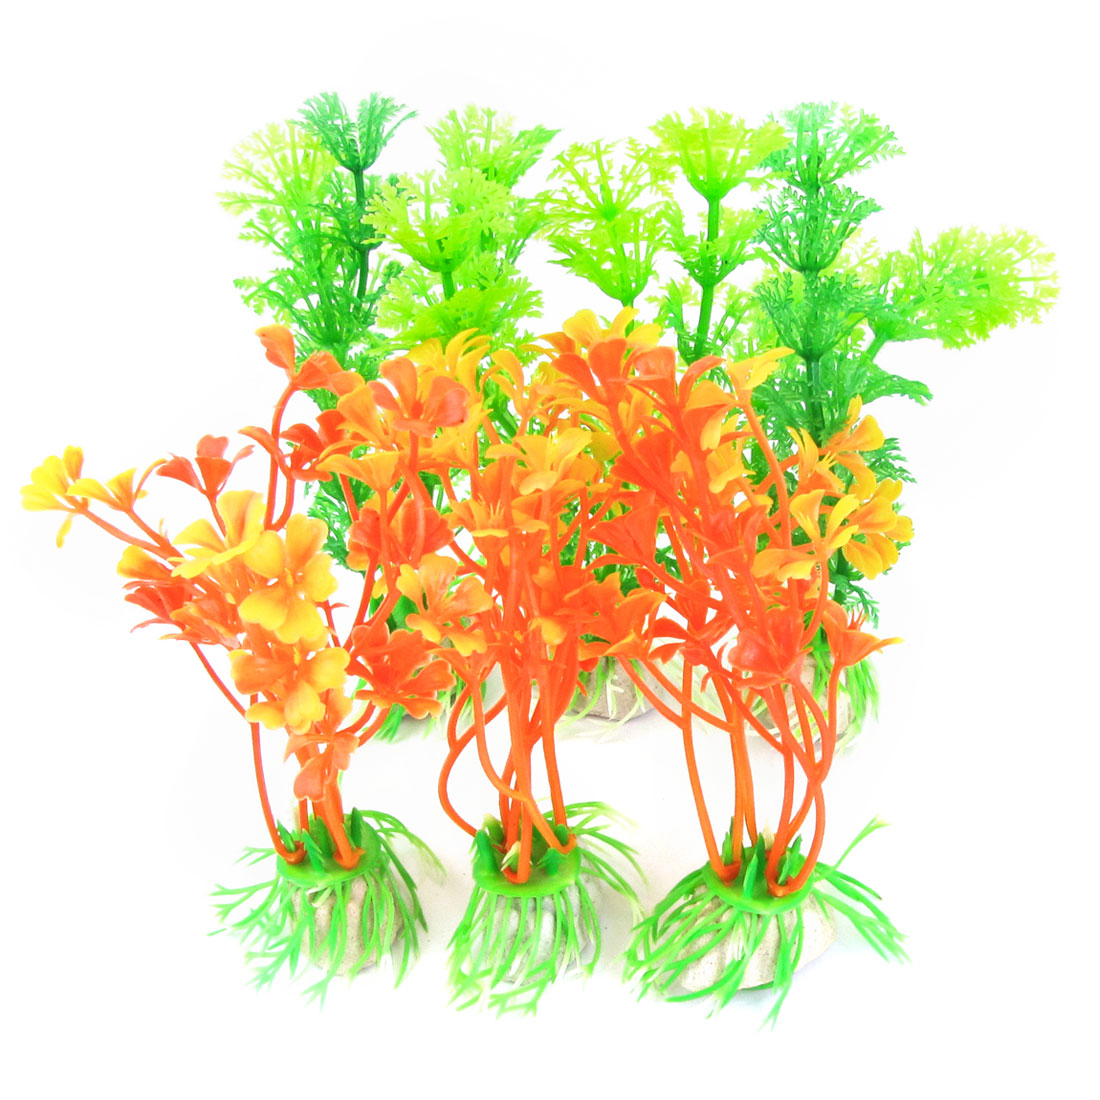 "6pcs Aquarium Decoration Ceramic Base Plastic Grass Plant 4.7"" High Orange Green"